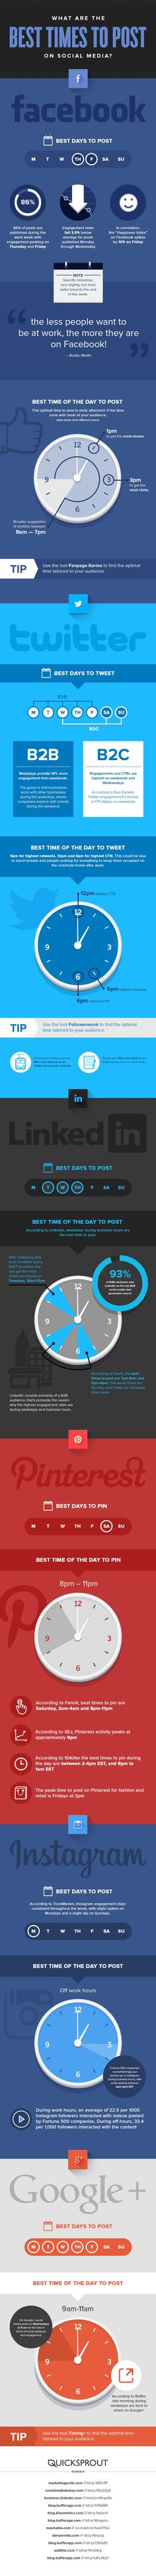 What Are The Best Times to Post on Social Media #infographic Jan. 2015